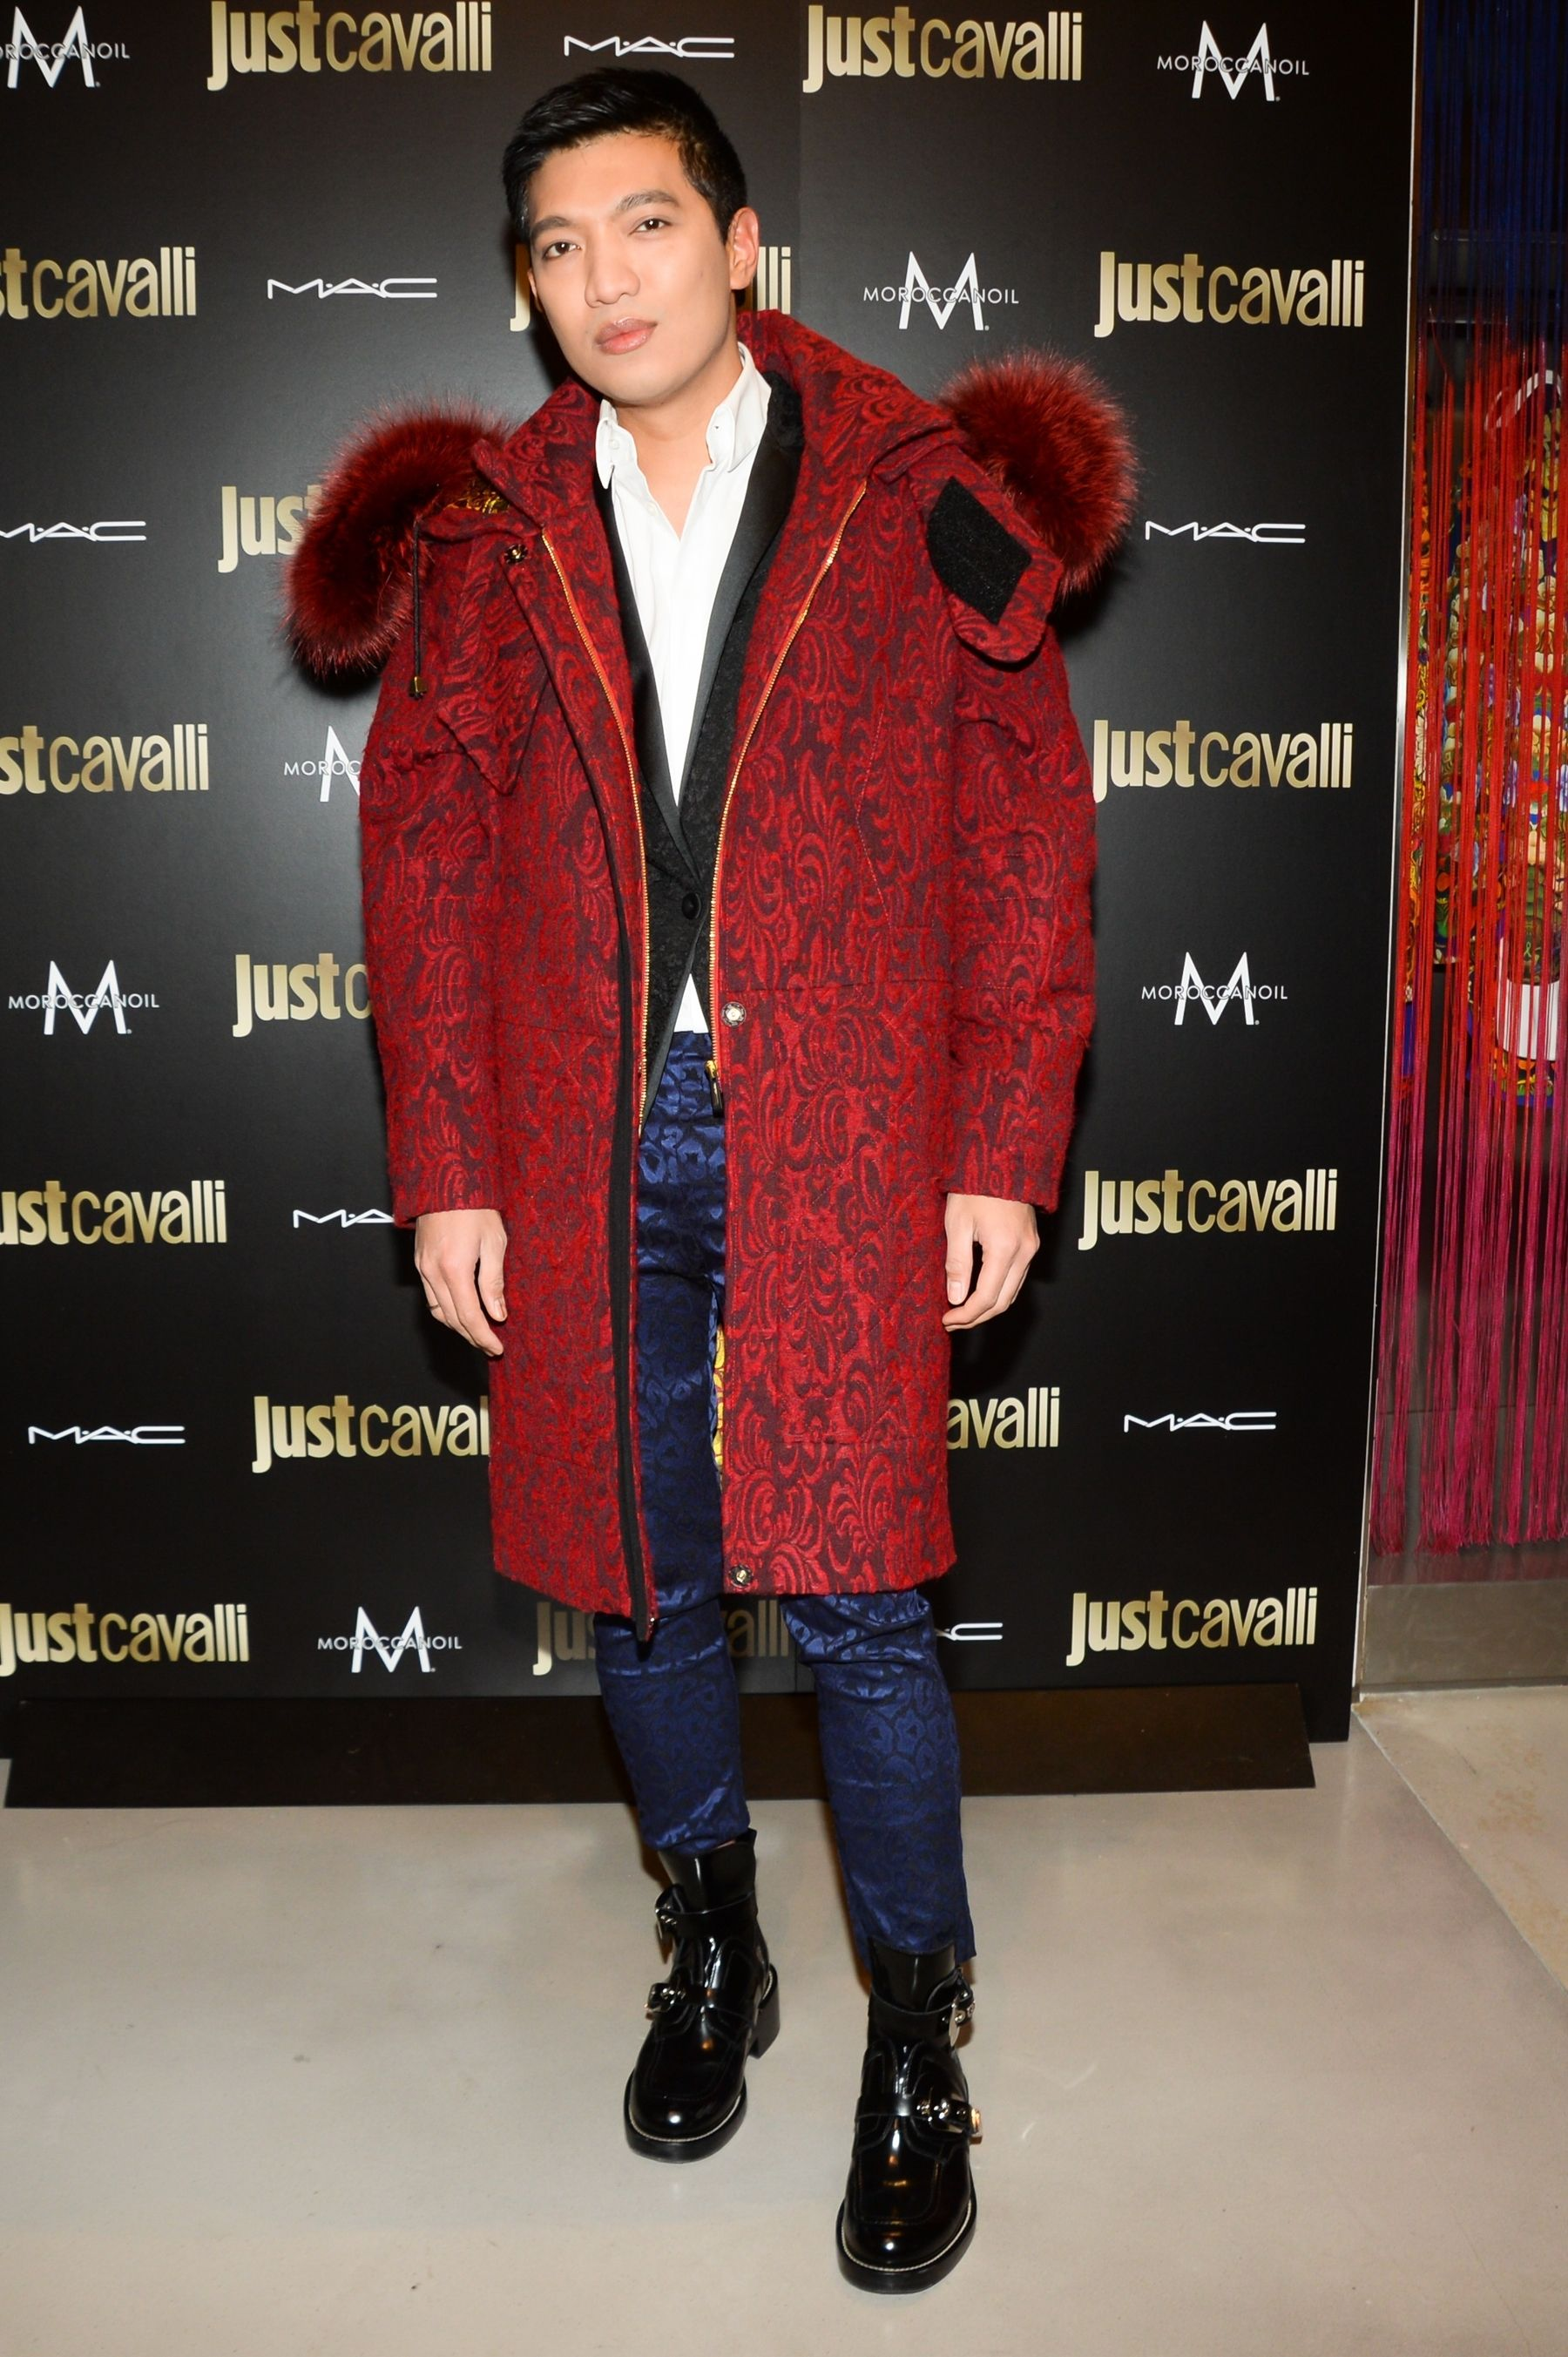 339170fcbe7f Bryan Boy from bryanboy.com in  JustCavalli at the Just Cavalli Boutique  Opening in NYC